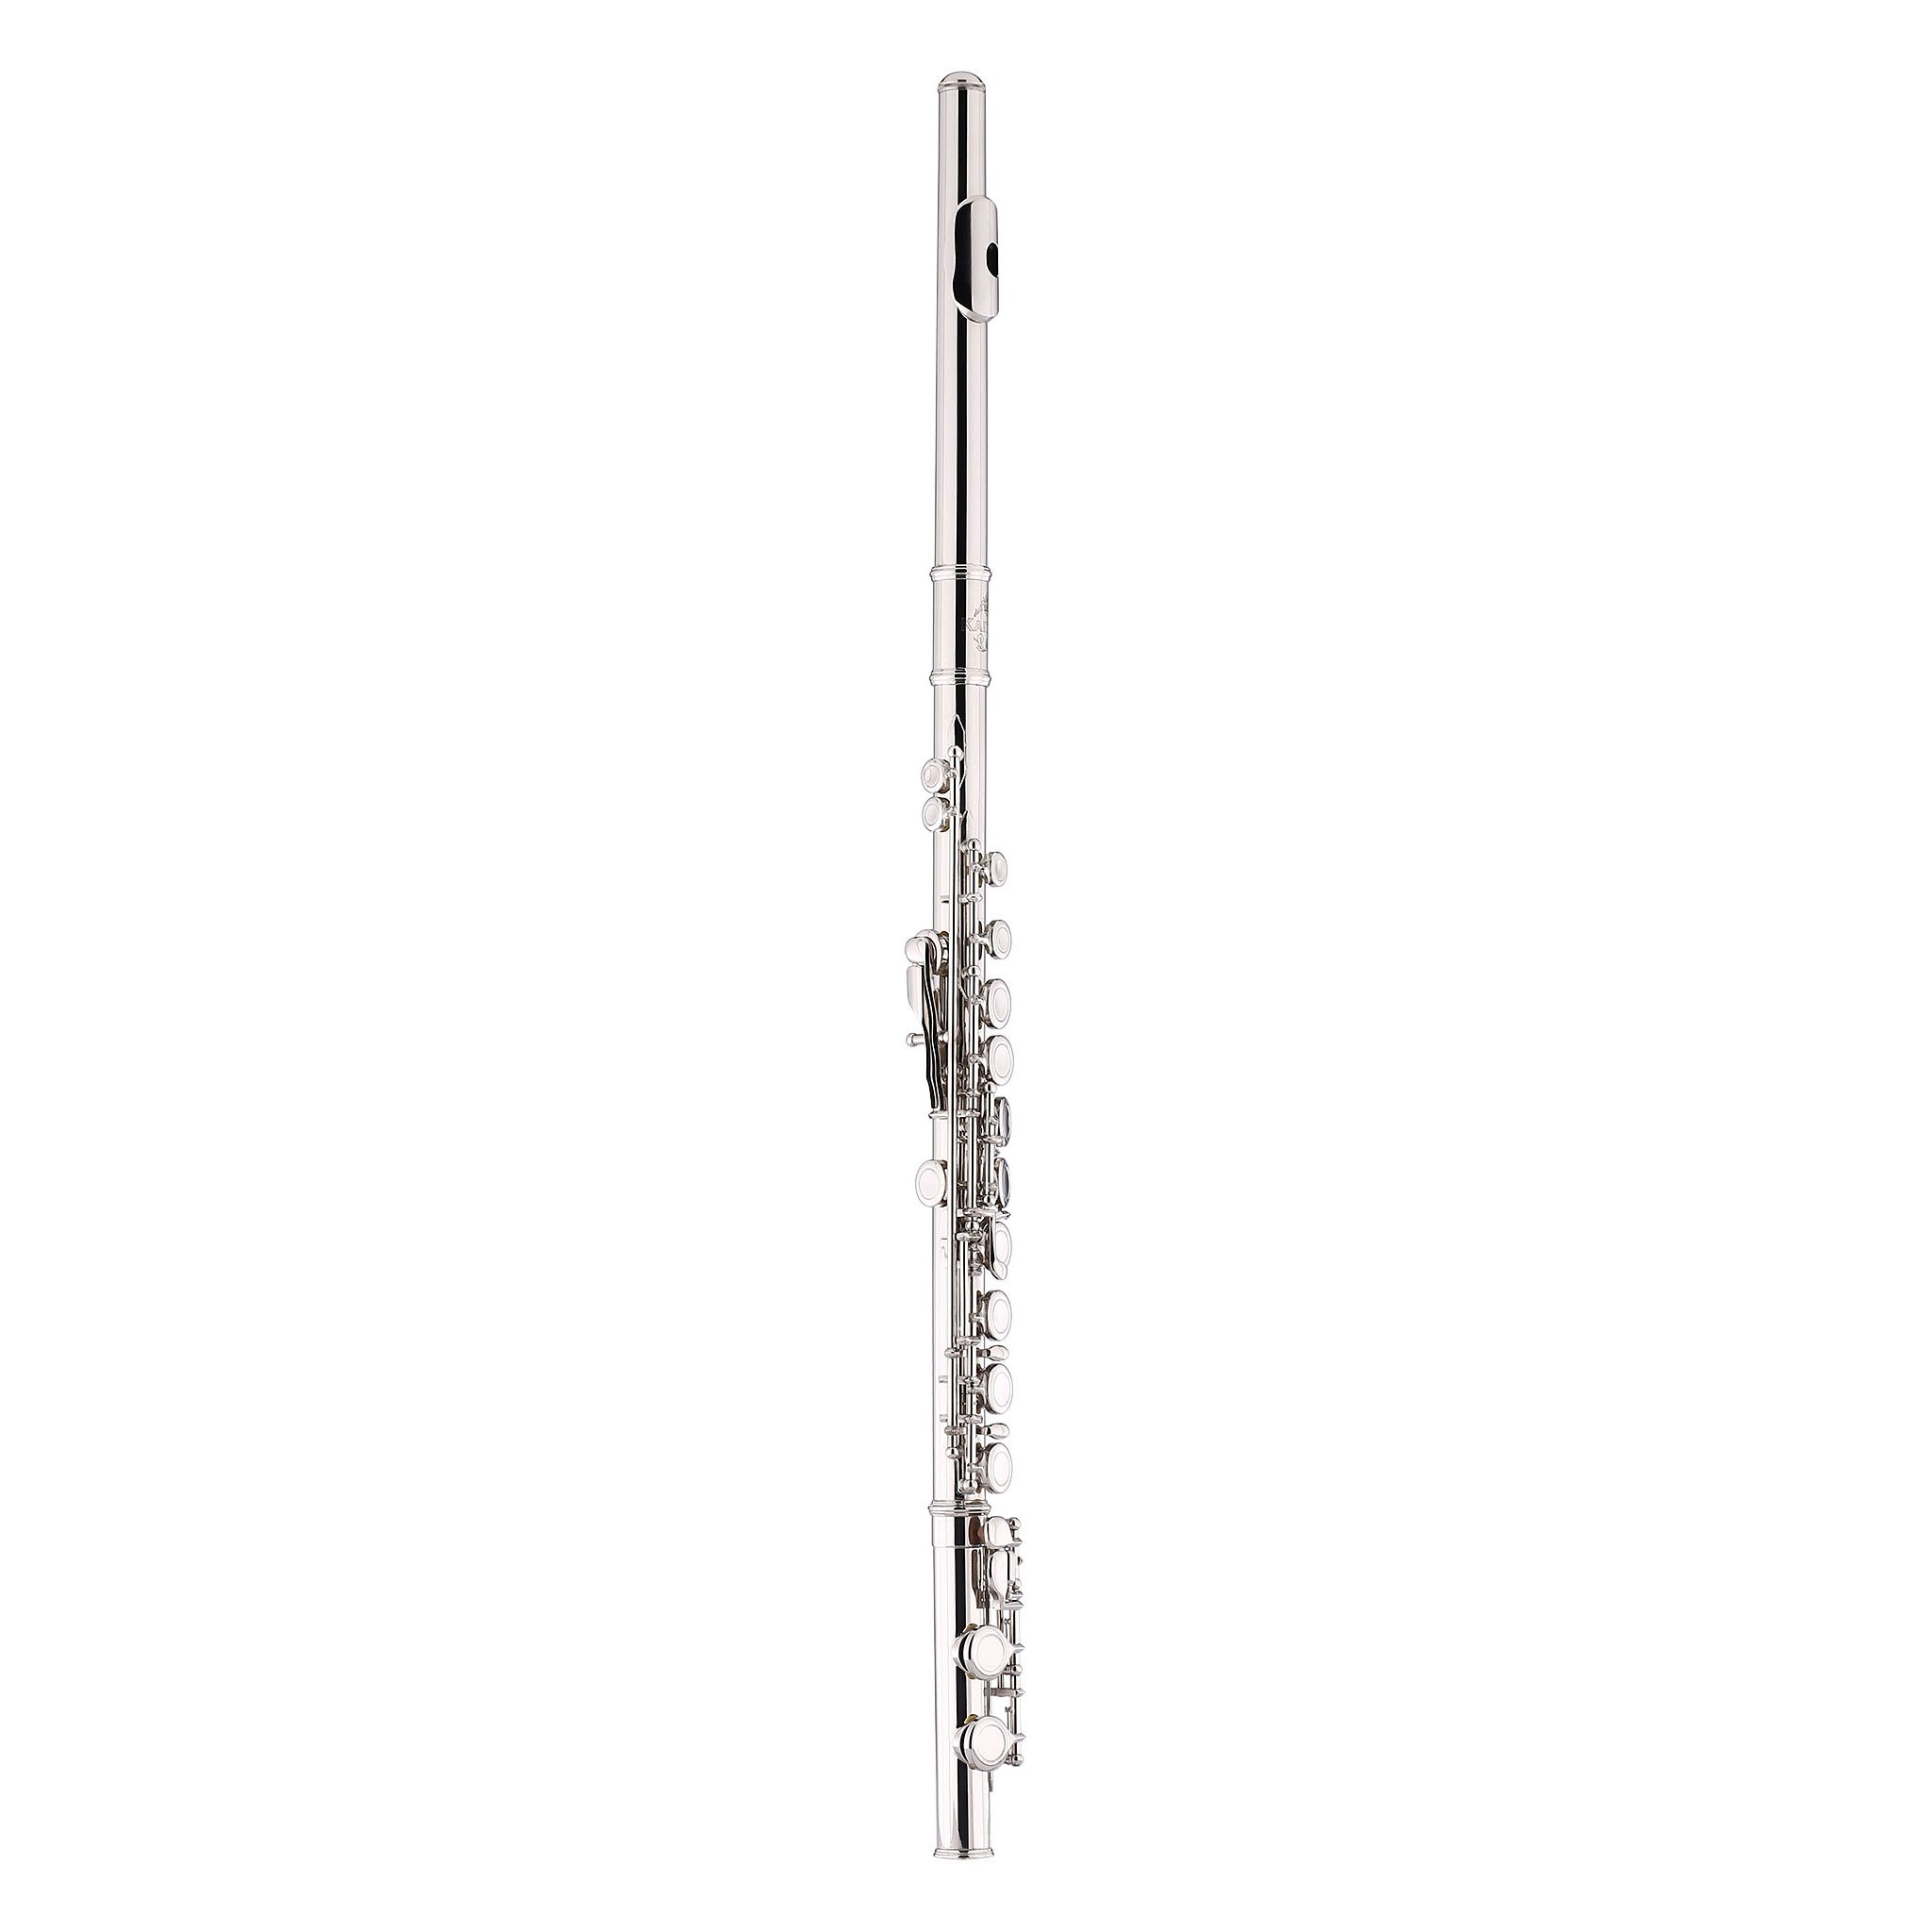 Kaizer Flute C Key 1000 Series Closed Hole Nickel Silver New 2018 Model Student Flute FLT-1500NK by Kaizer (Image #3)